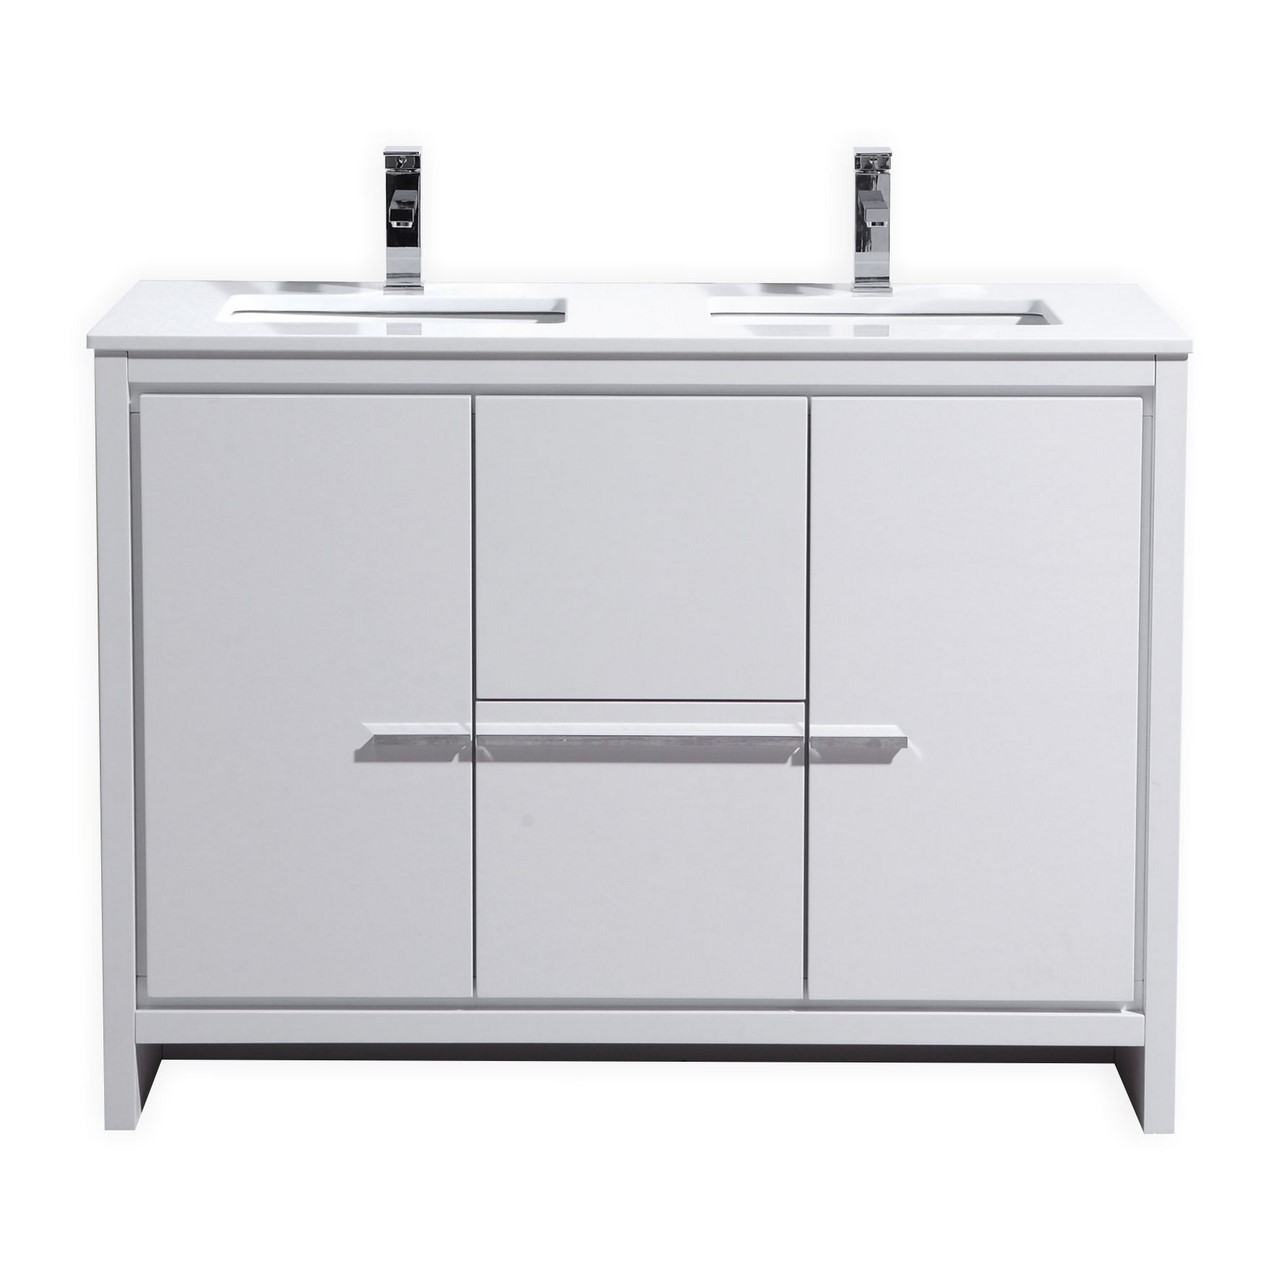 kubebath dolce 48 double sink high gloss white. Black Bedroom Furniture Sets. Home Design Ideas